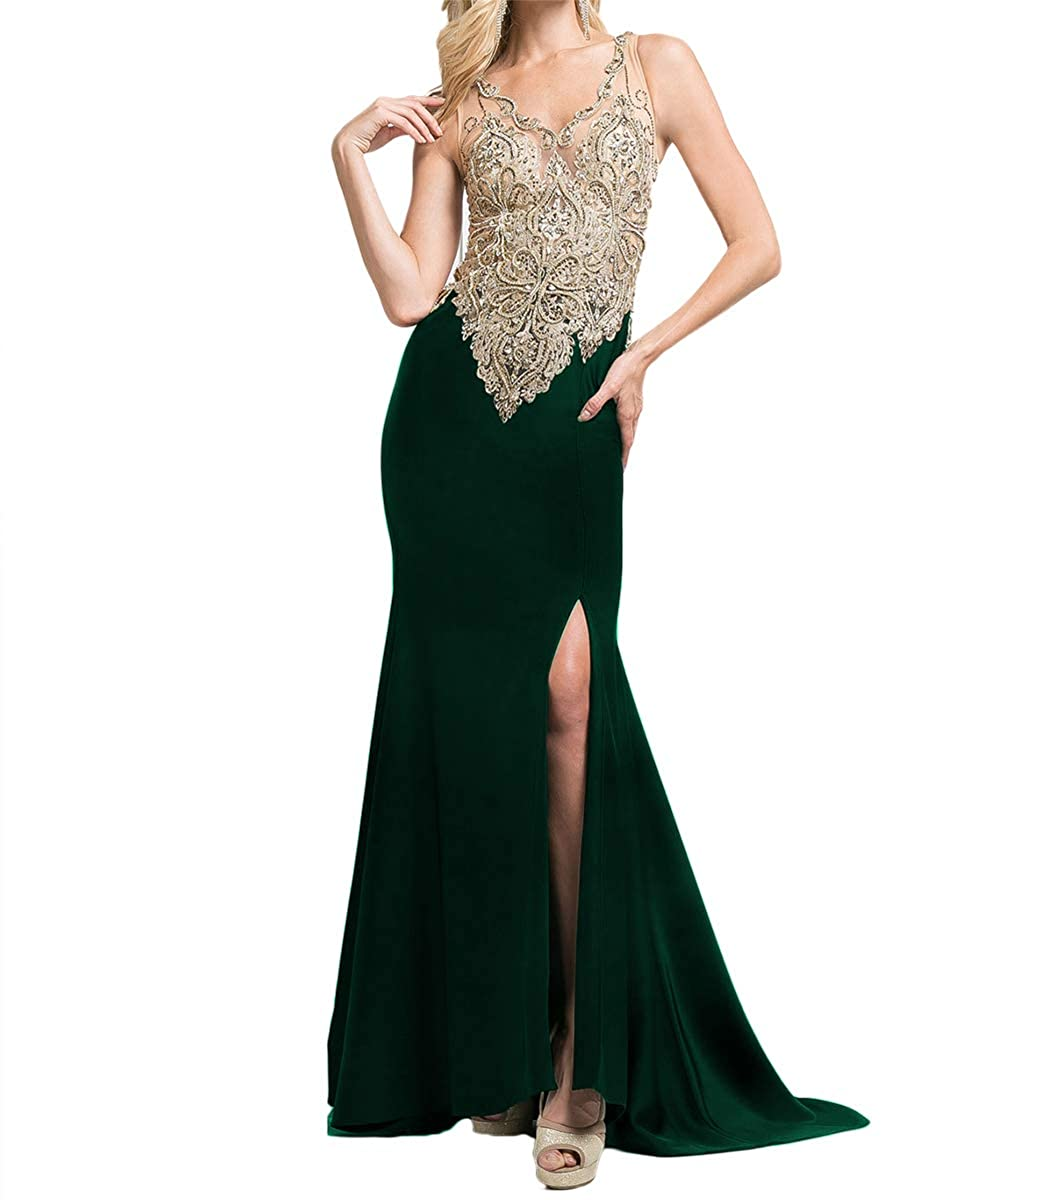 Emerald Green SDRESS Women's gold Lace Appliques V Neck Spit Side Formal Prom Homecoming Dress